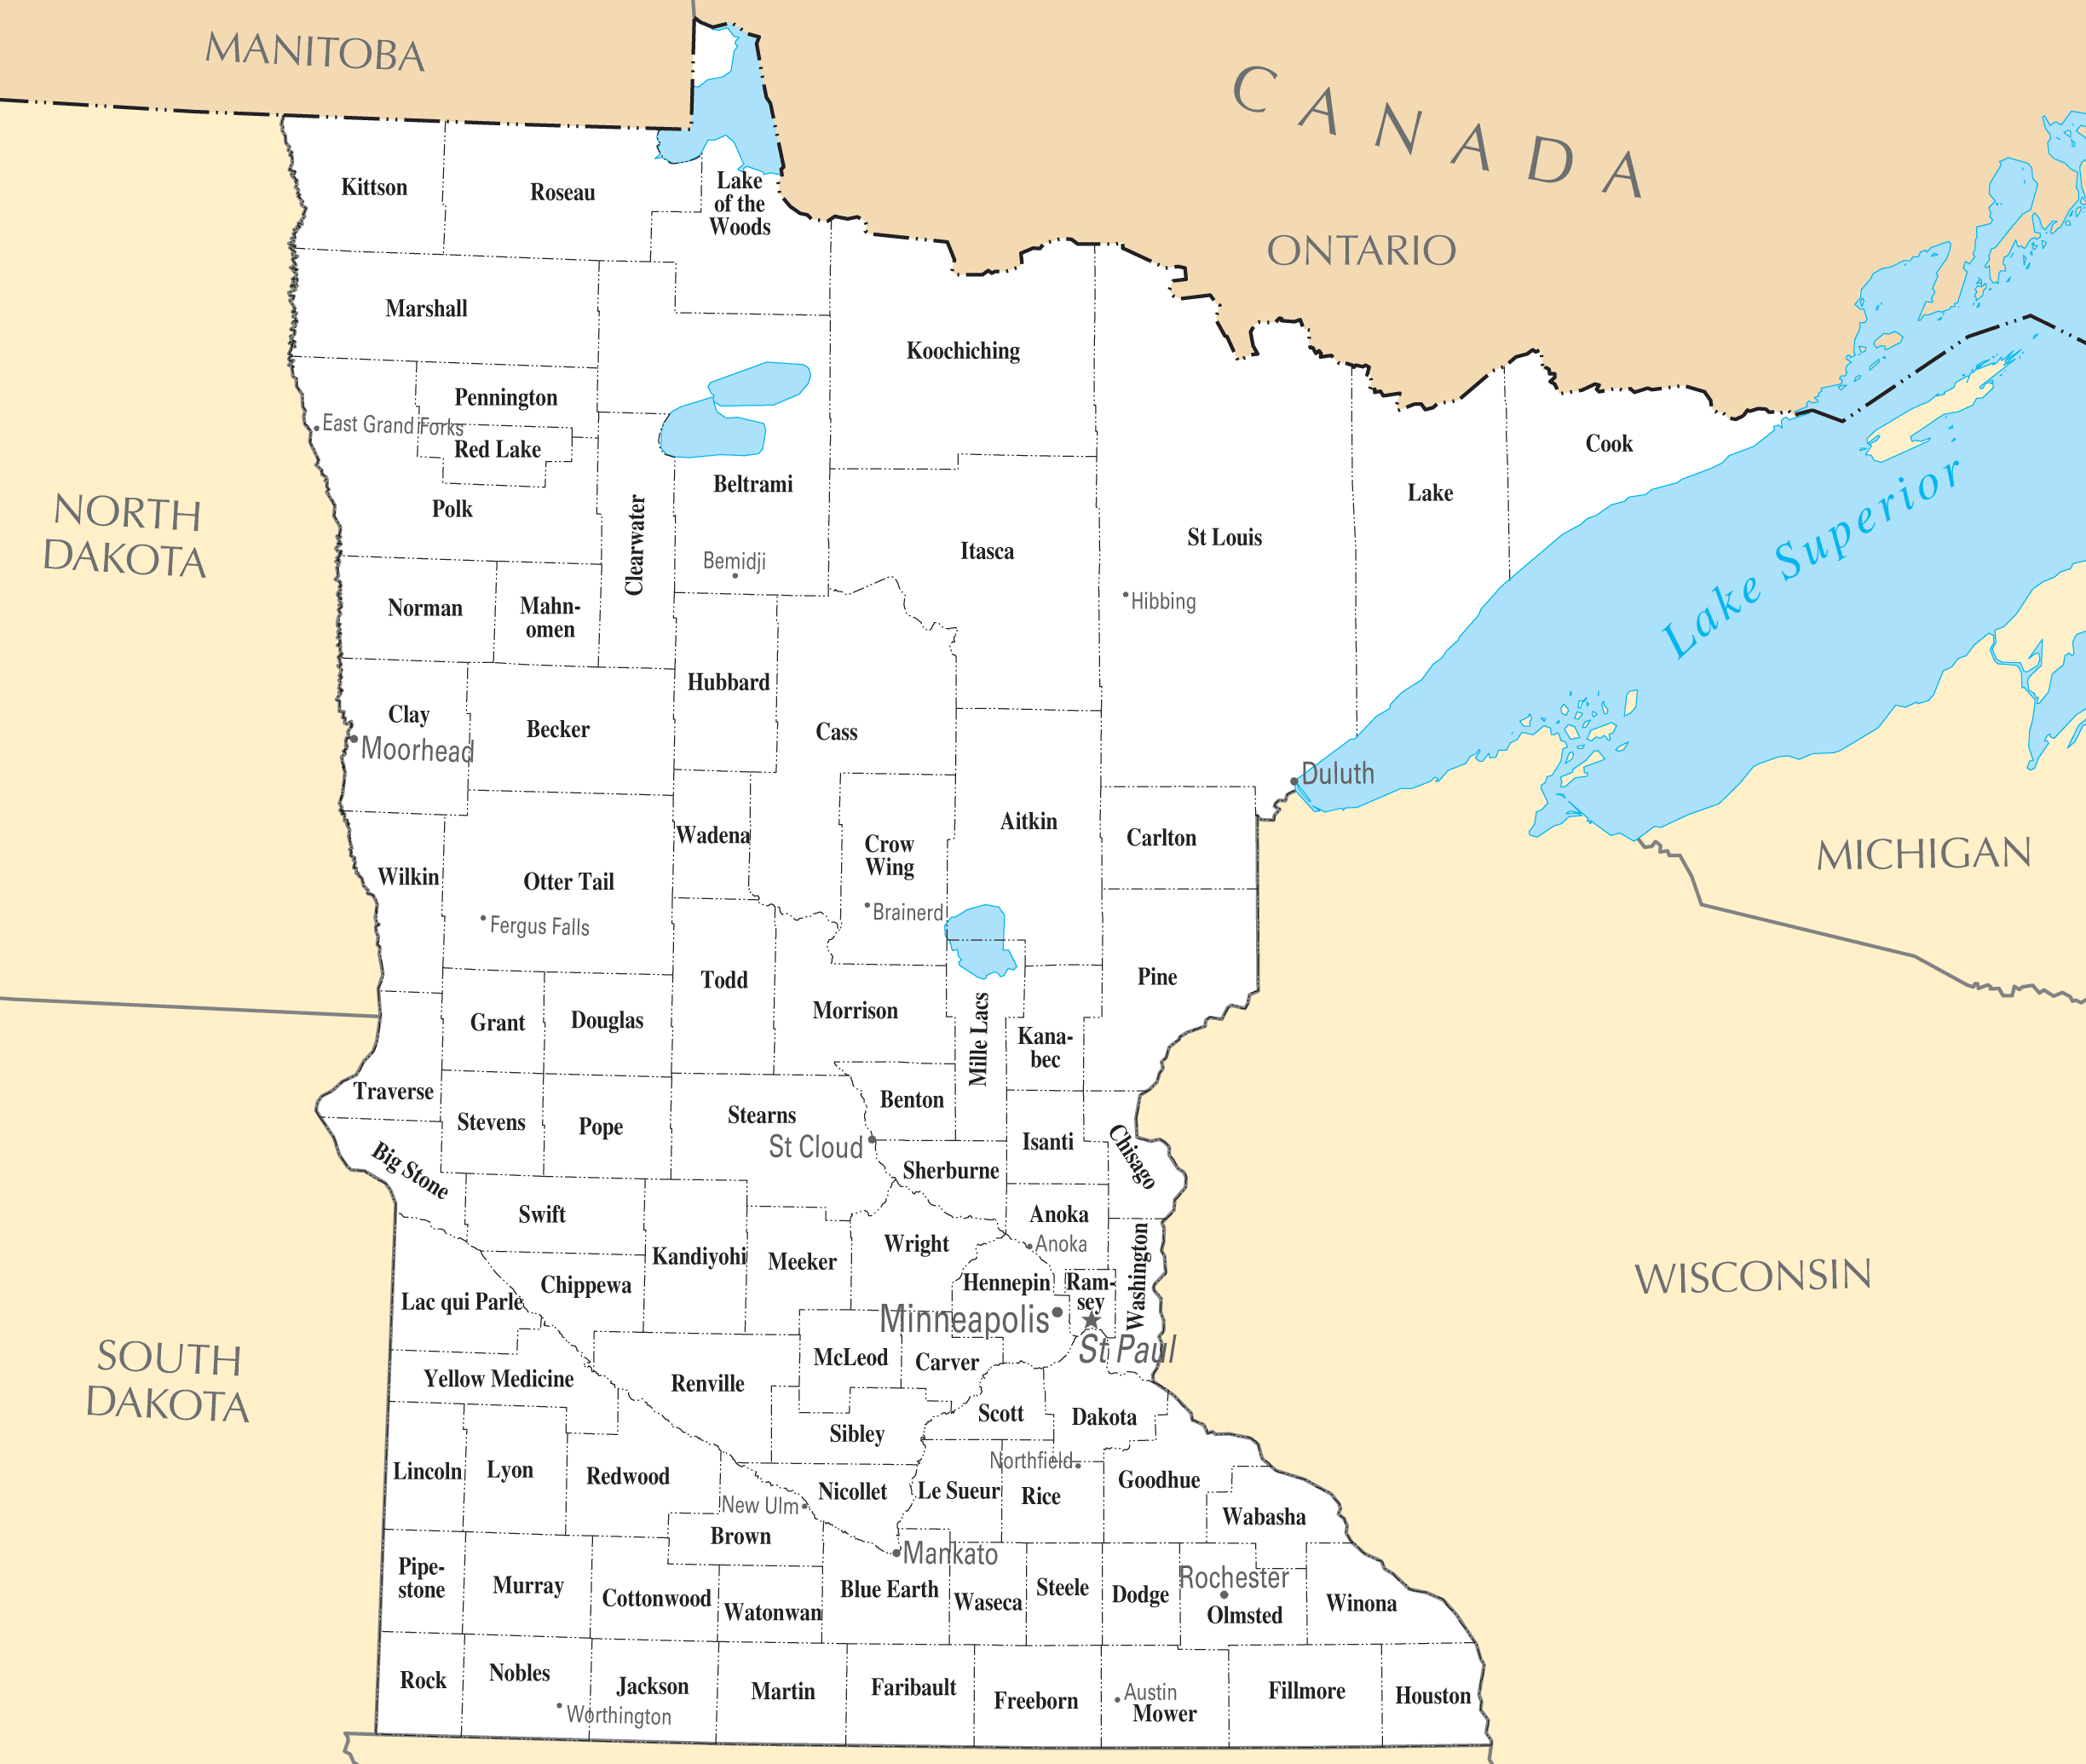 Minnesota Cities And Towns • Mapsof.net